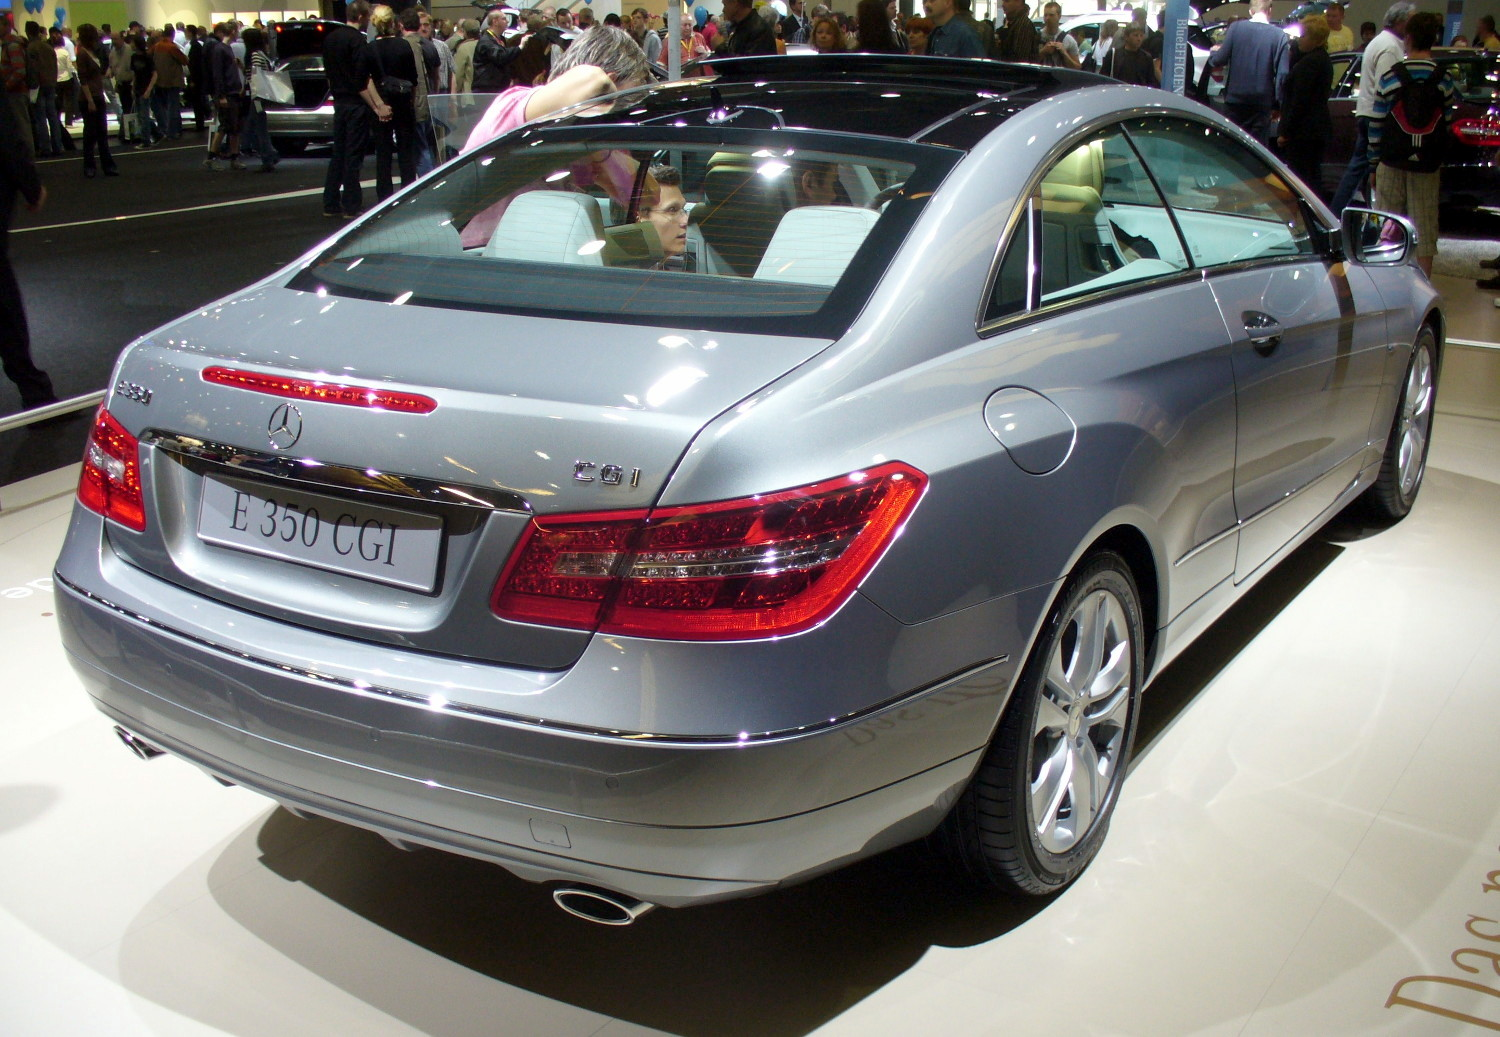 mercedes benz e 350 technical details history photos on better parts ltd. Black Bedroom Furniture Sets. Home Design Ideas